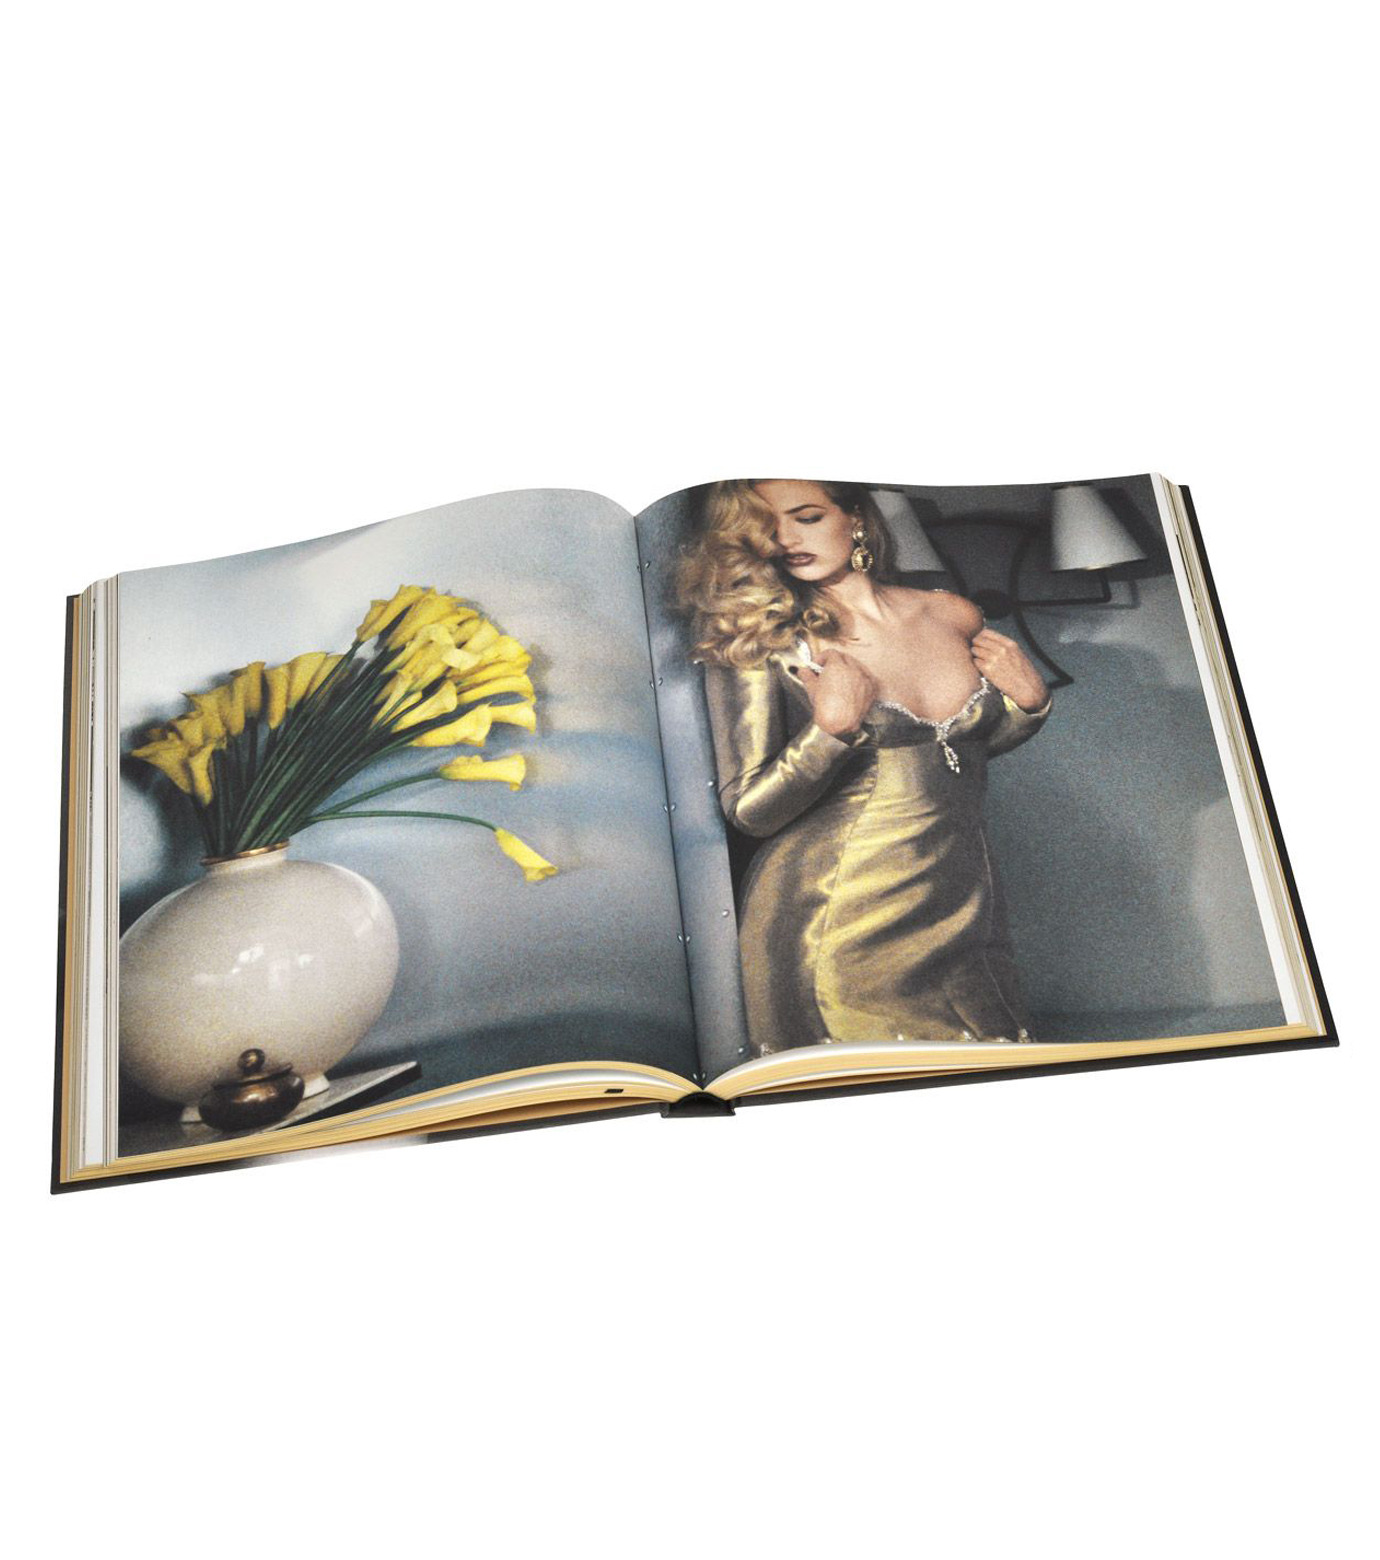 ArtBook(アートブック)のChloe: Six Decades of Style-GRAY(インテリア/OTHER-GOODS/interior/OTHER-GOODS)-8478-3852-3-11 拡大詳細画像3